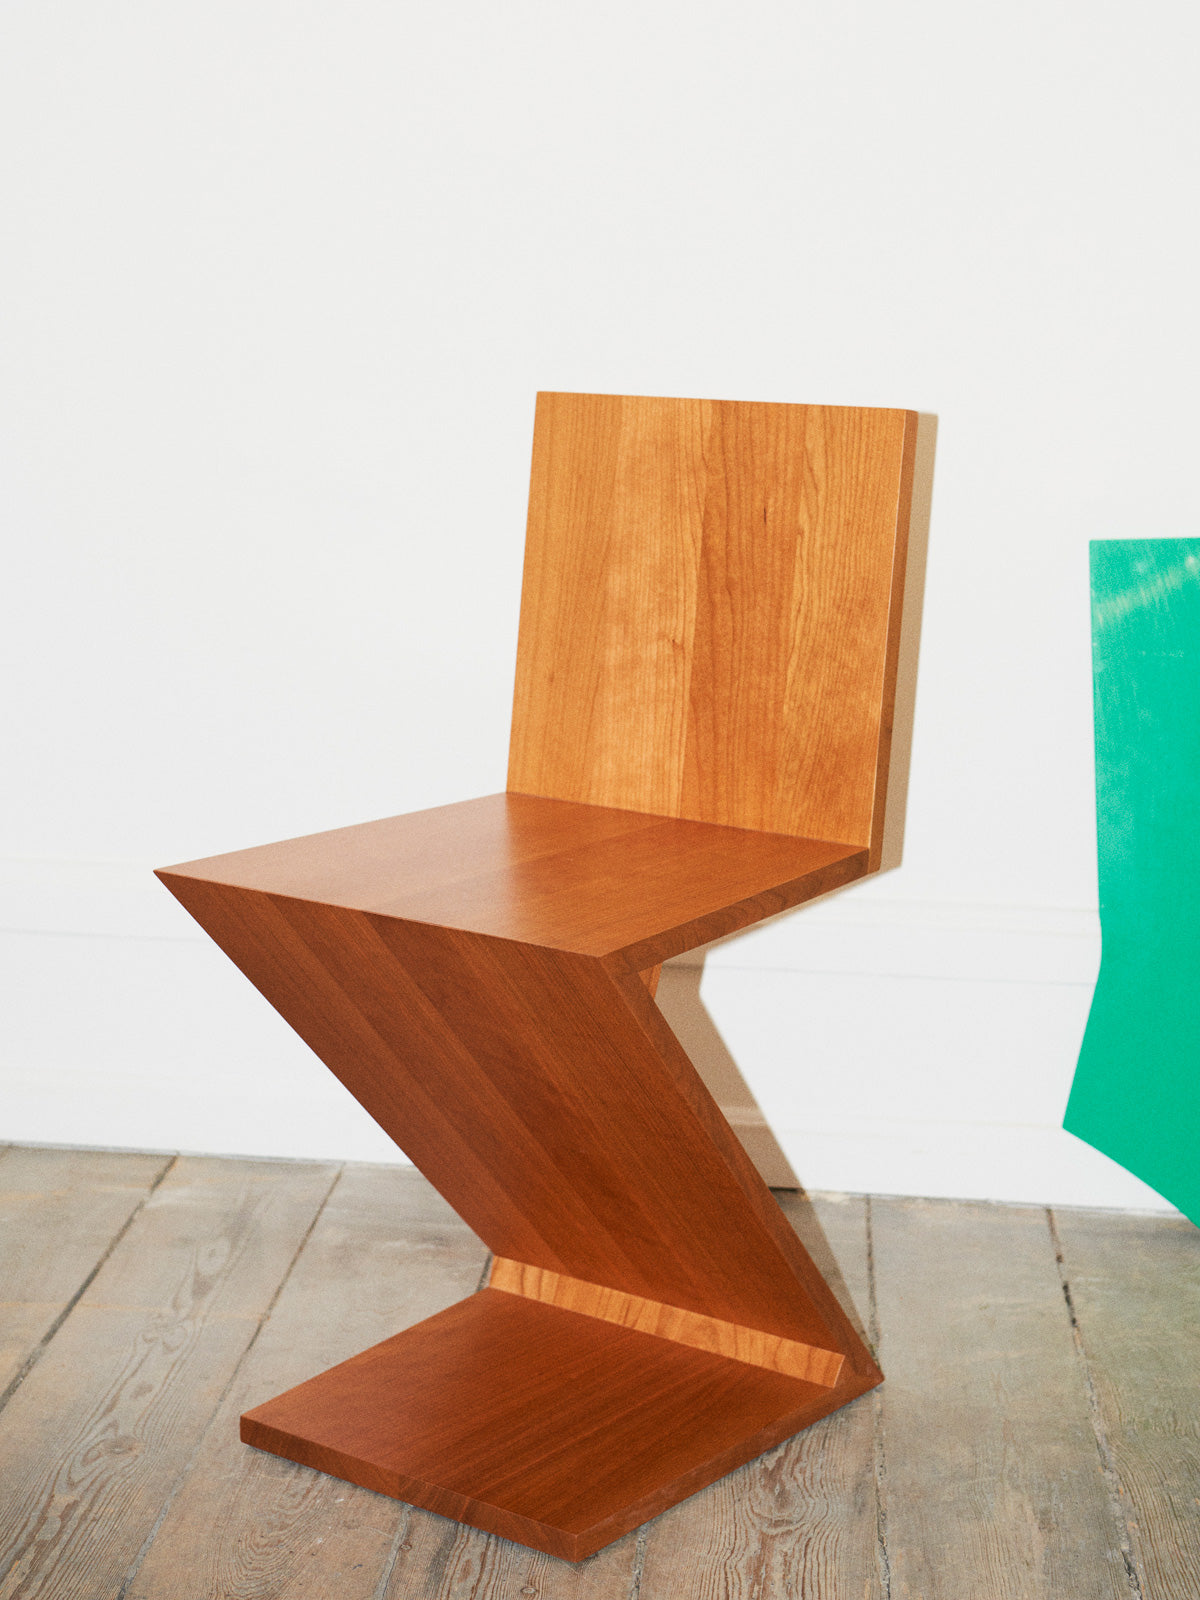 Cassina Zig Zag chair by Gerrit Thomas Rietveld